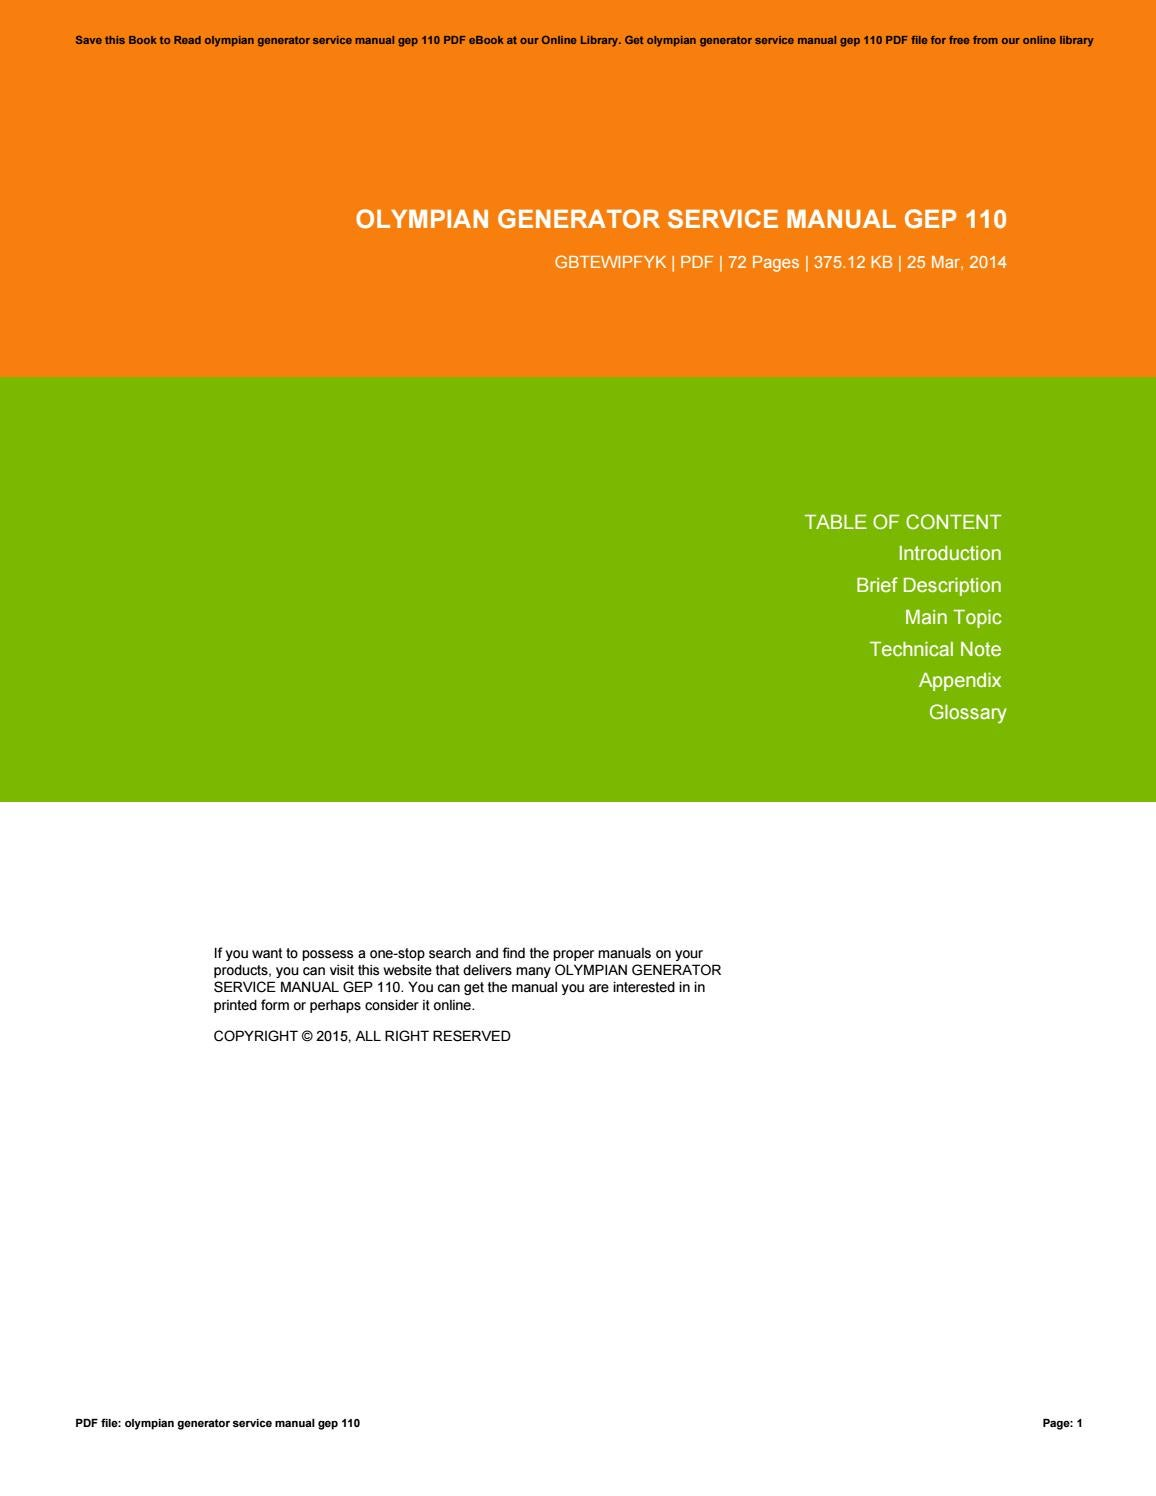 Olympian Generator Service Manual Gep 110 By Mariaciotti3632 Issuu Genset Wiring Diagram